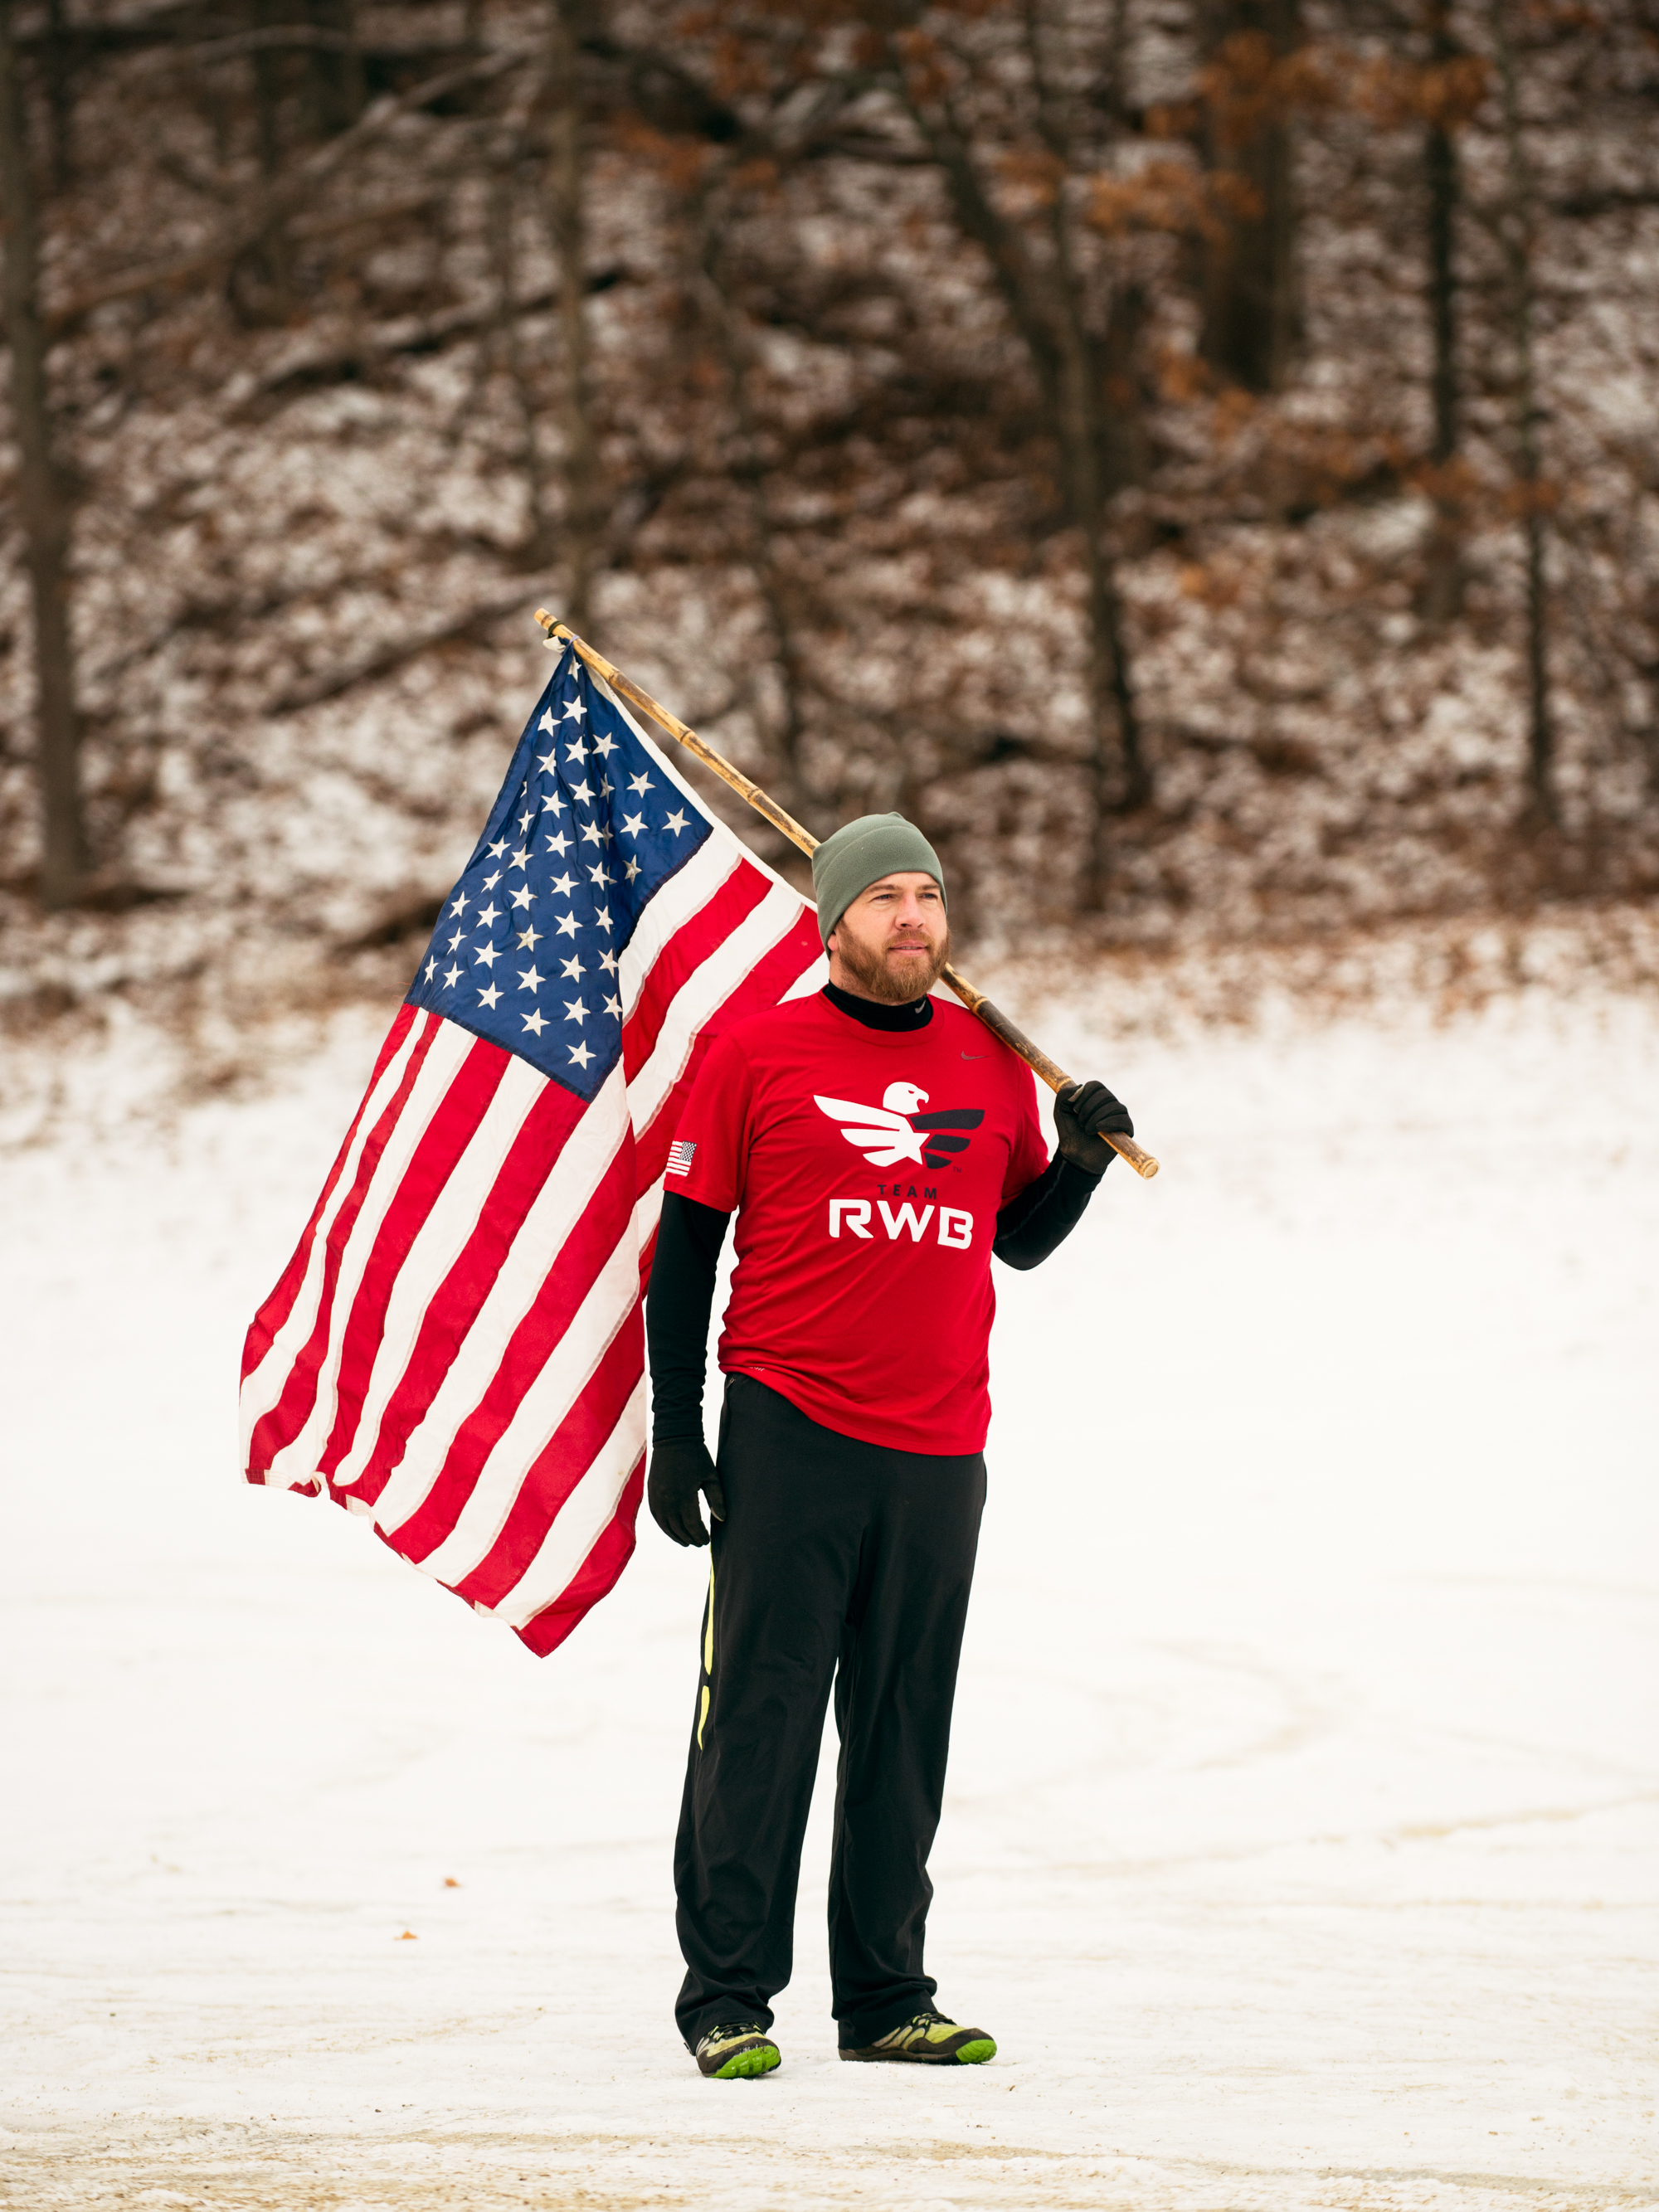 James Buzzell, U.S. army veteran who uses running to counter the symptoms of PTSD  Runner's World